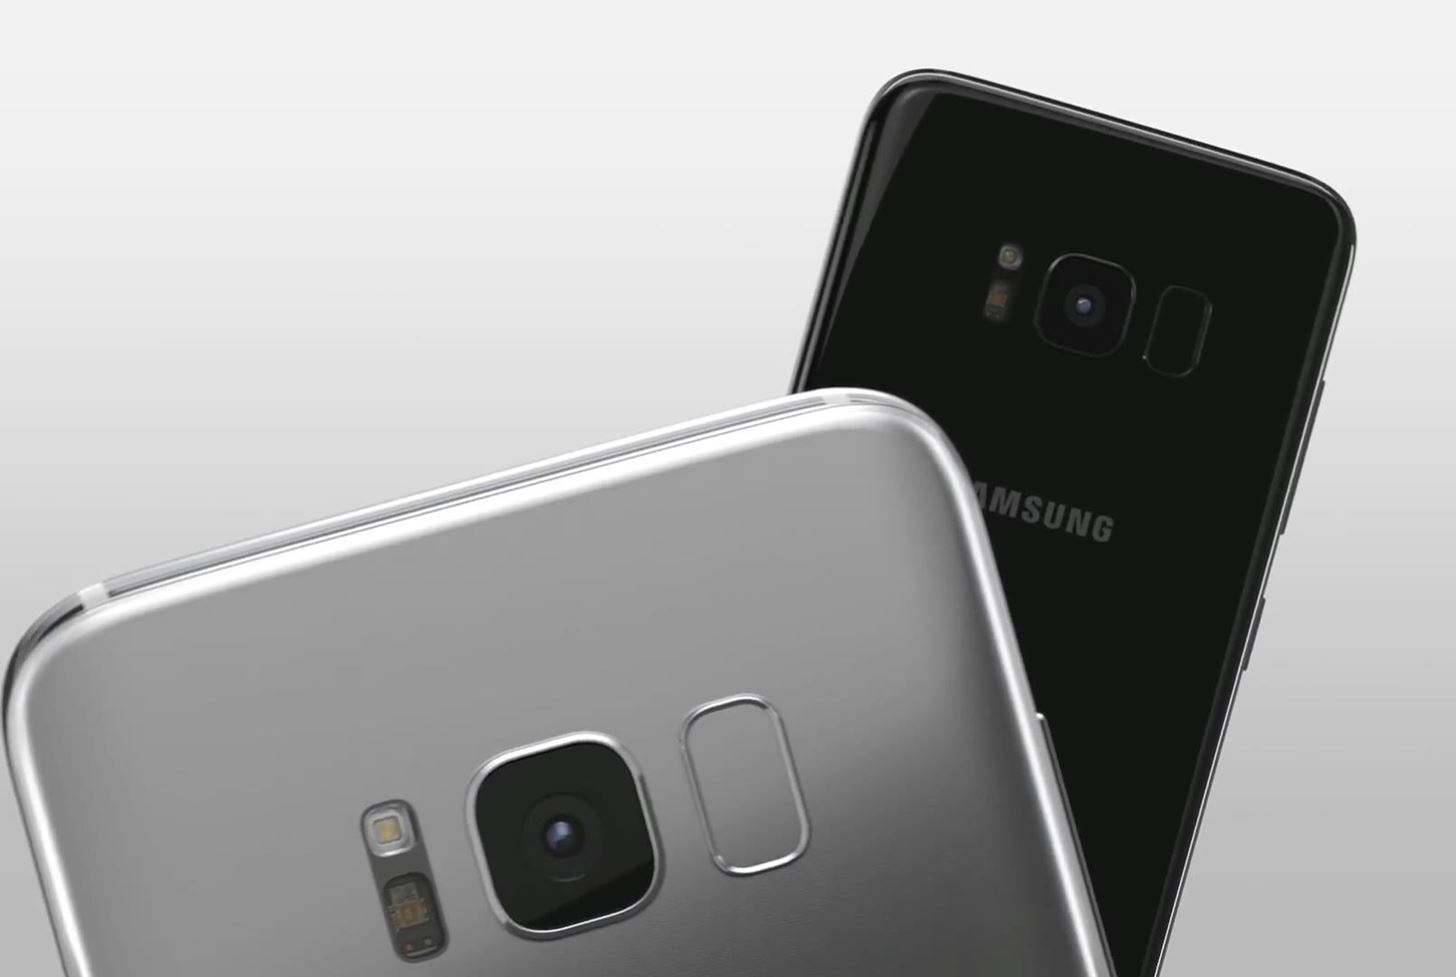 Roundup: 10 Samsung Galaxy S8 Features You Need to Know About